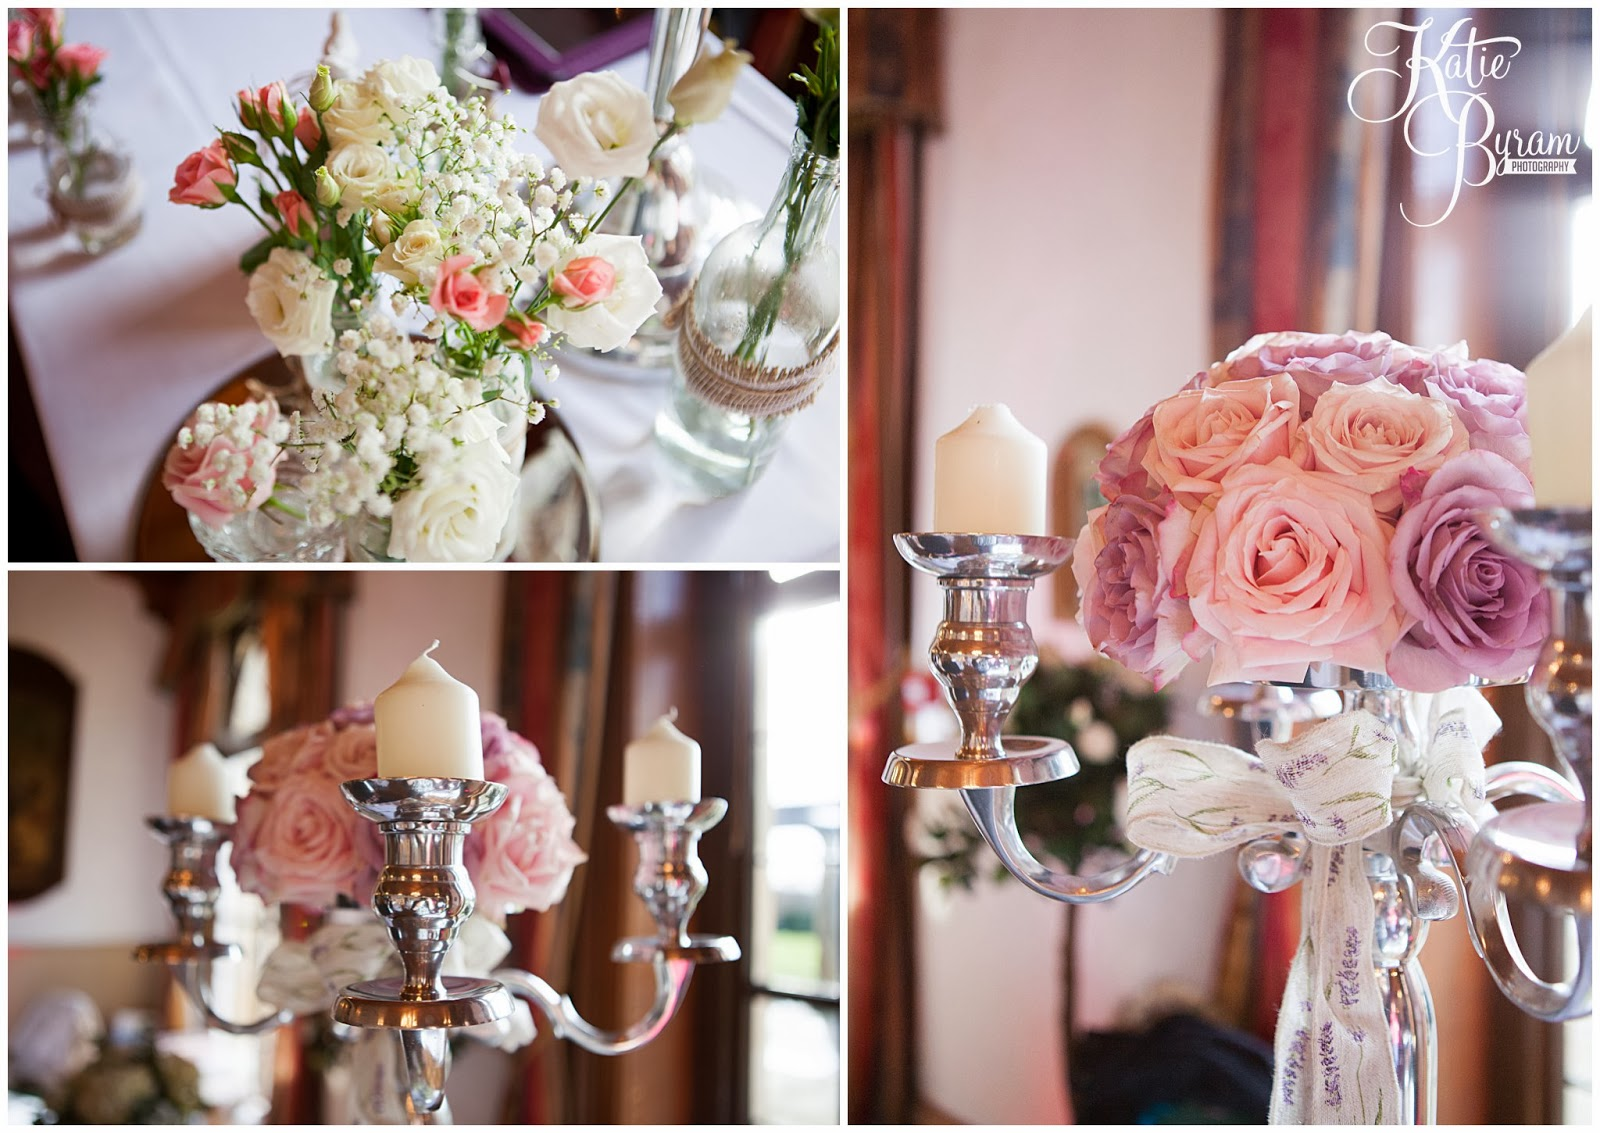 floral centerpieces, florists gosforth, kirkley hall wedding fair, kirkley hall wedding, kirkley hall wedding showcase, katie byram photography, by wendy stationery, floral quarter, mark deeks music, northumberland wedding venue,